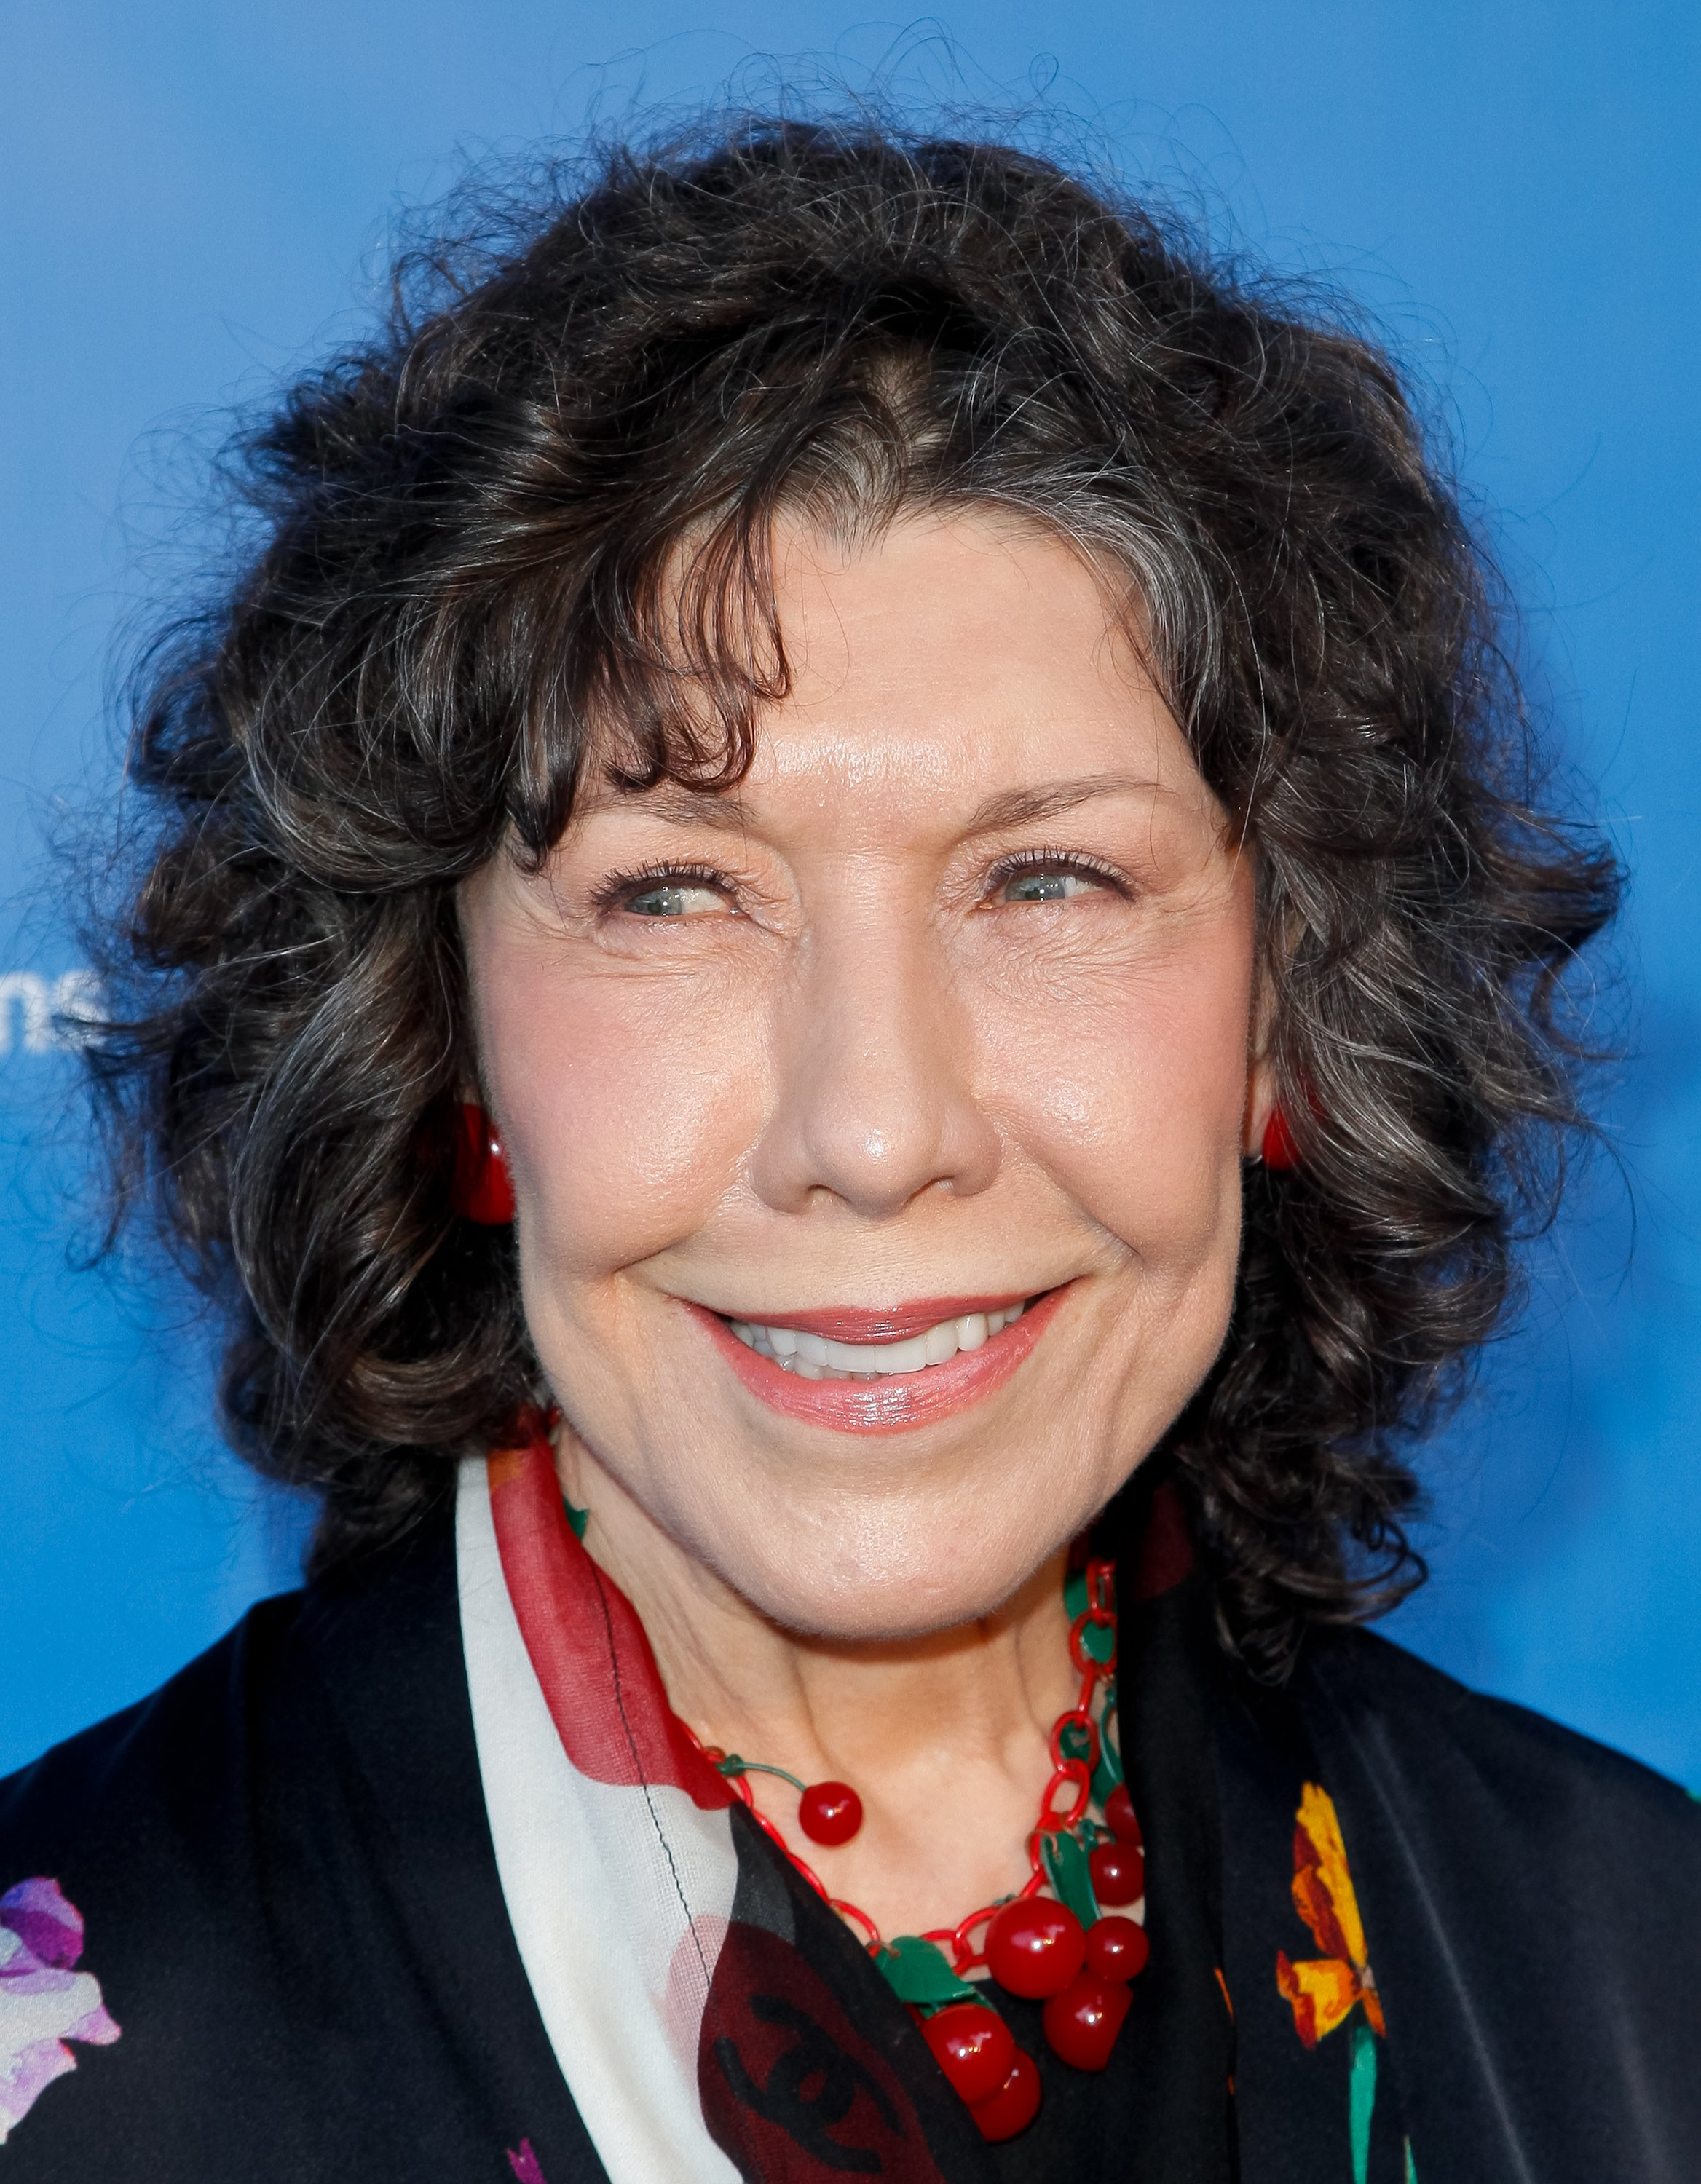 Lily Tomlin attends the 10th annual Oceana SeaChange Summer Party at Private Residence on July 15, 2017, in Laguna Beach, California. | Source: Getty Images.